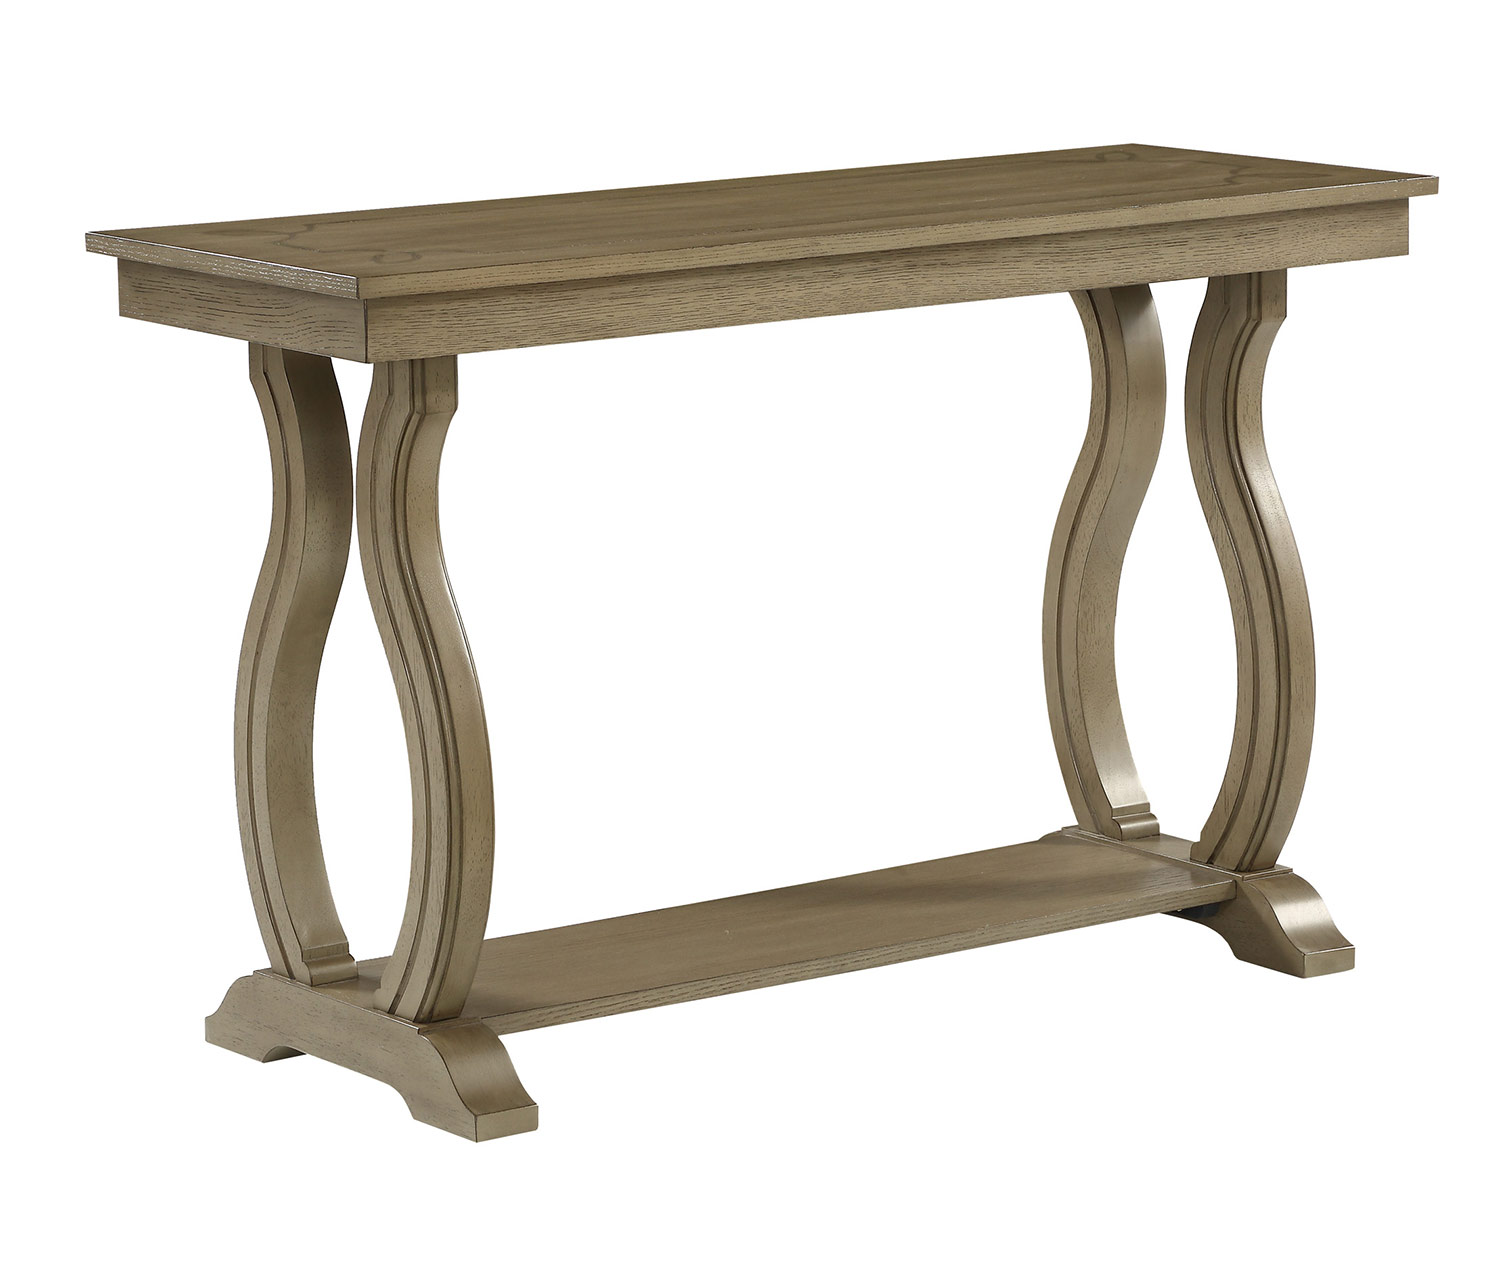 Homelegance Vermillion Sofa Table - Bisque